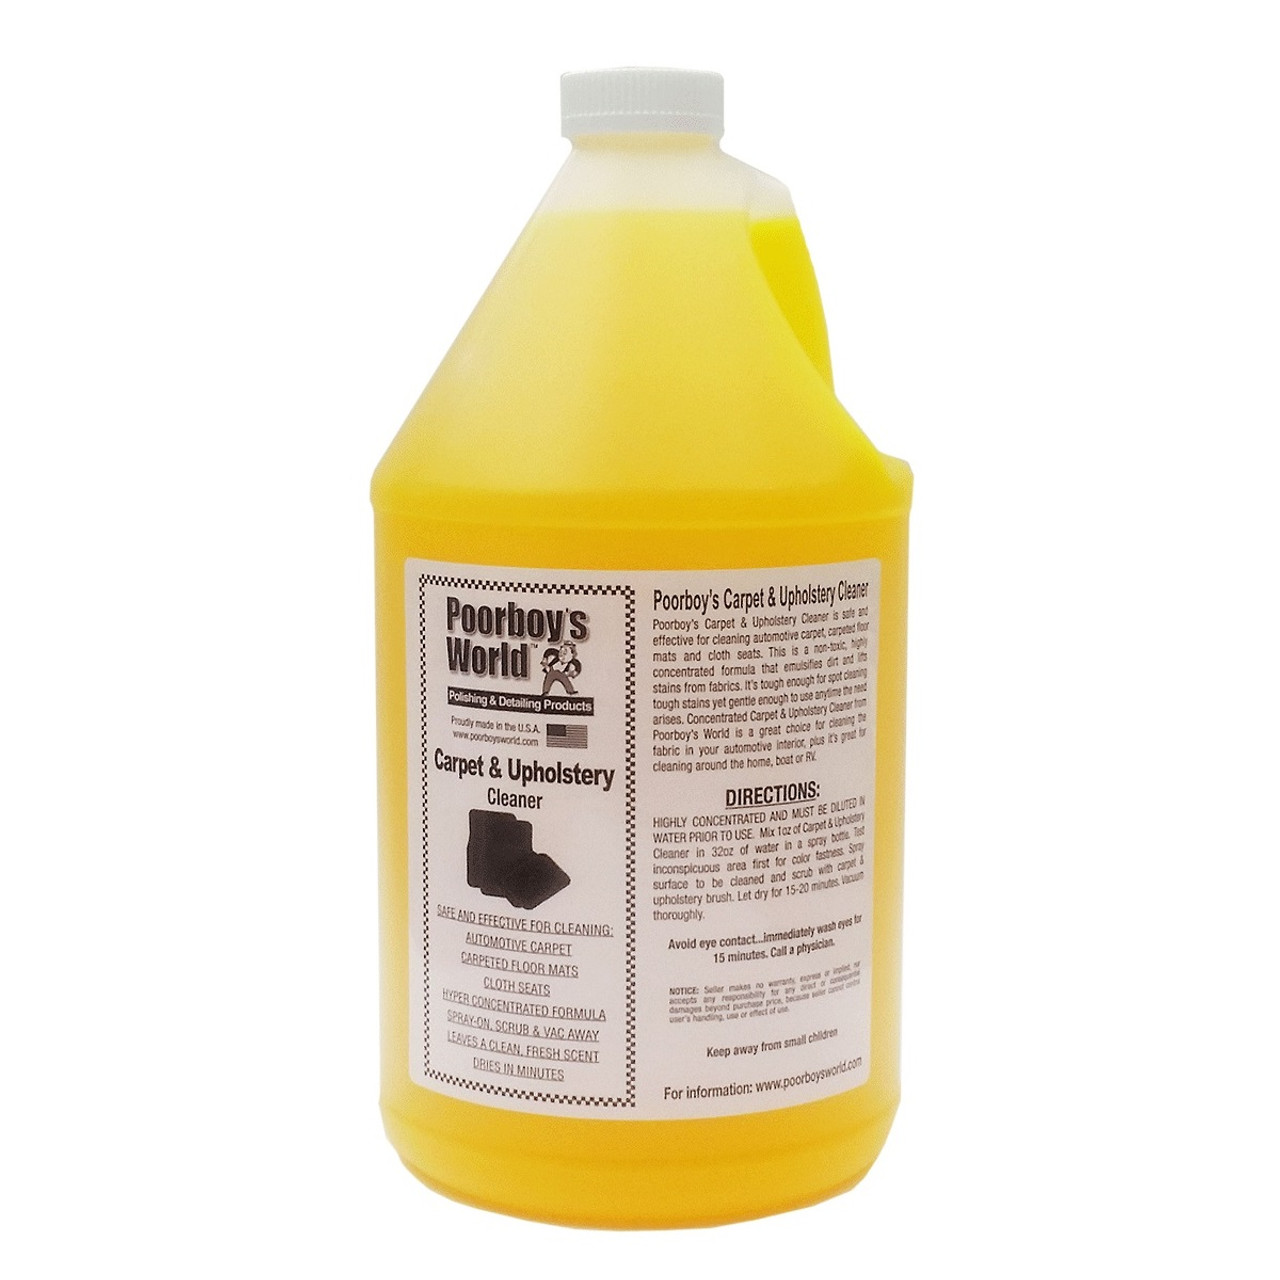 Poorboy's World Carpet & Upholstery Cleaner Gallon